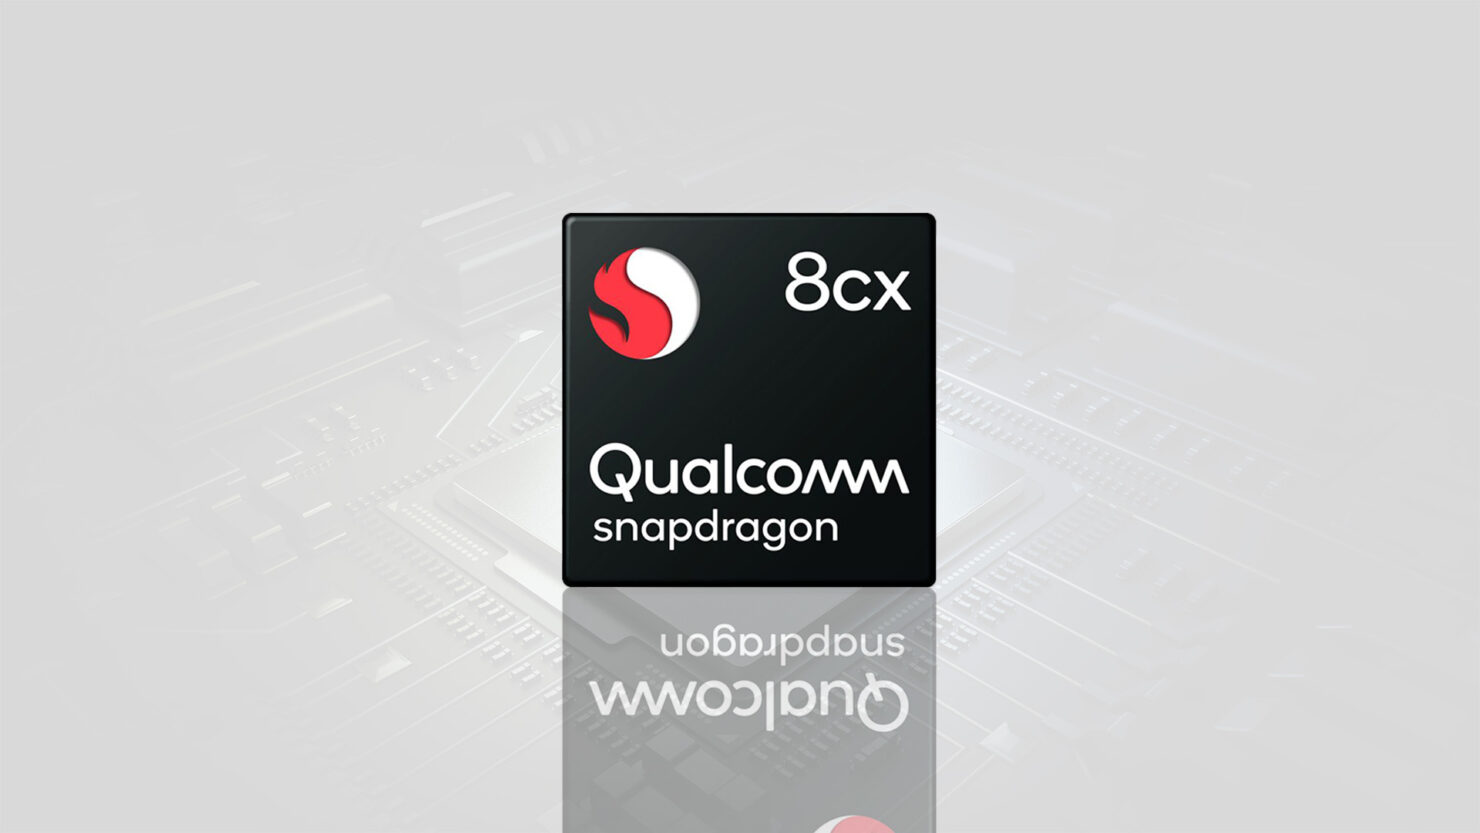 Faster Snapdragon 8cx for Windows 10 PCs Reportedly in the Works